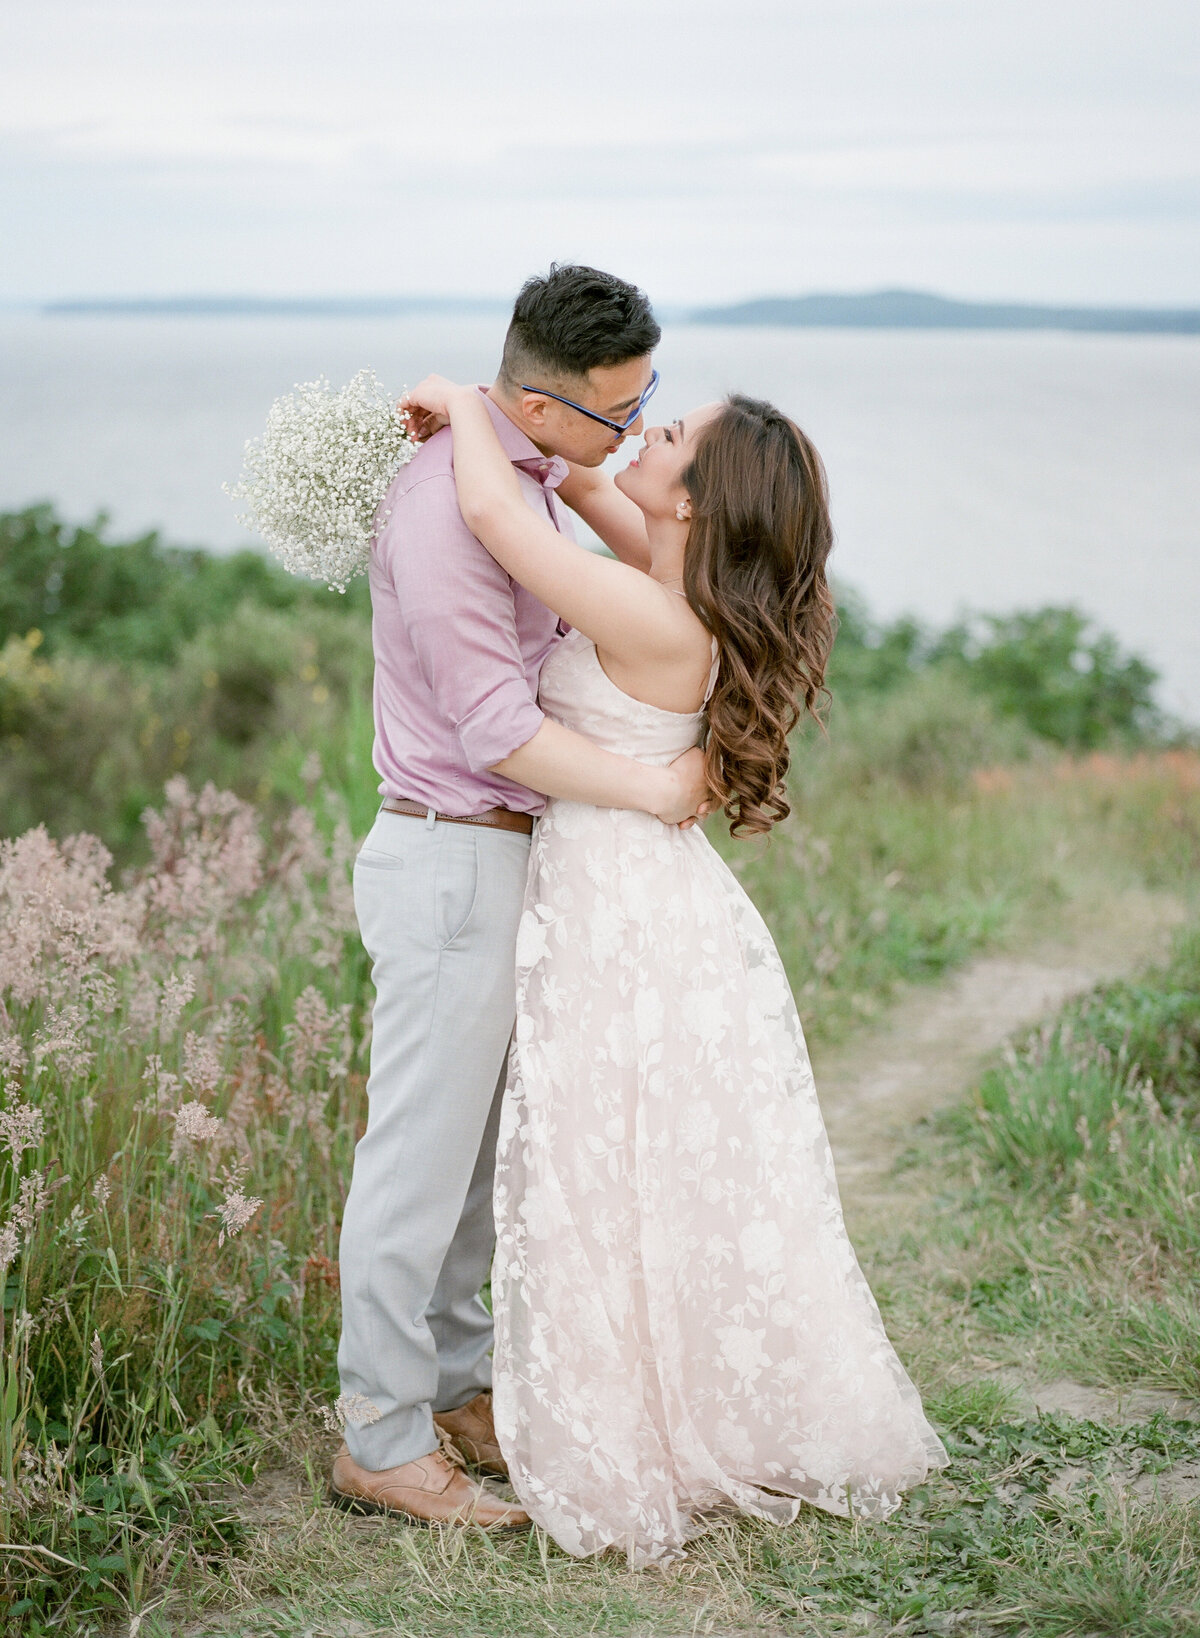 Nikki & Matt - Discovery Park Engagement - Tetiana Photgoraphy-93